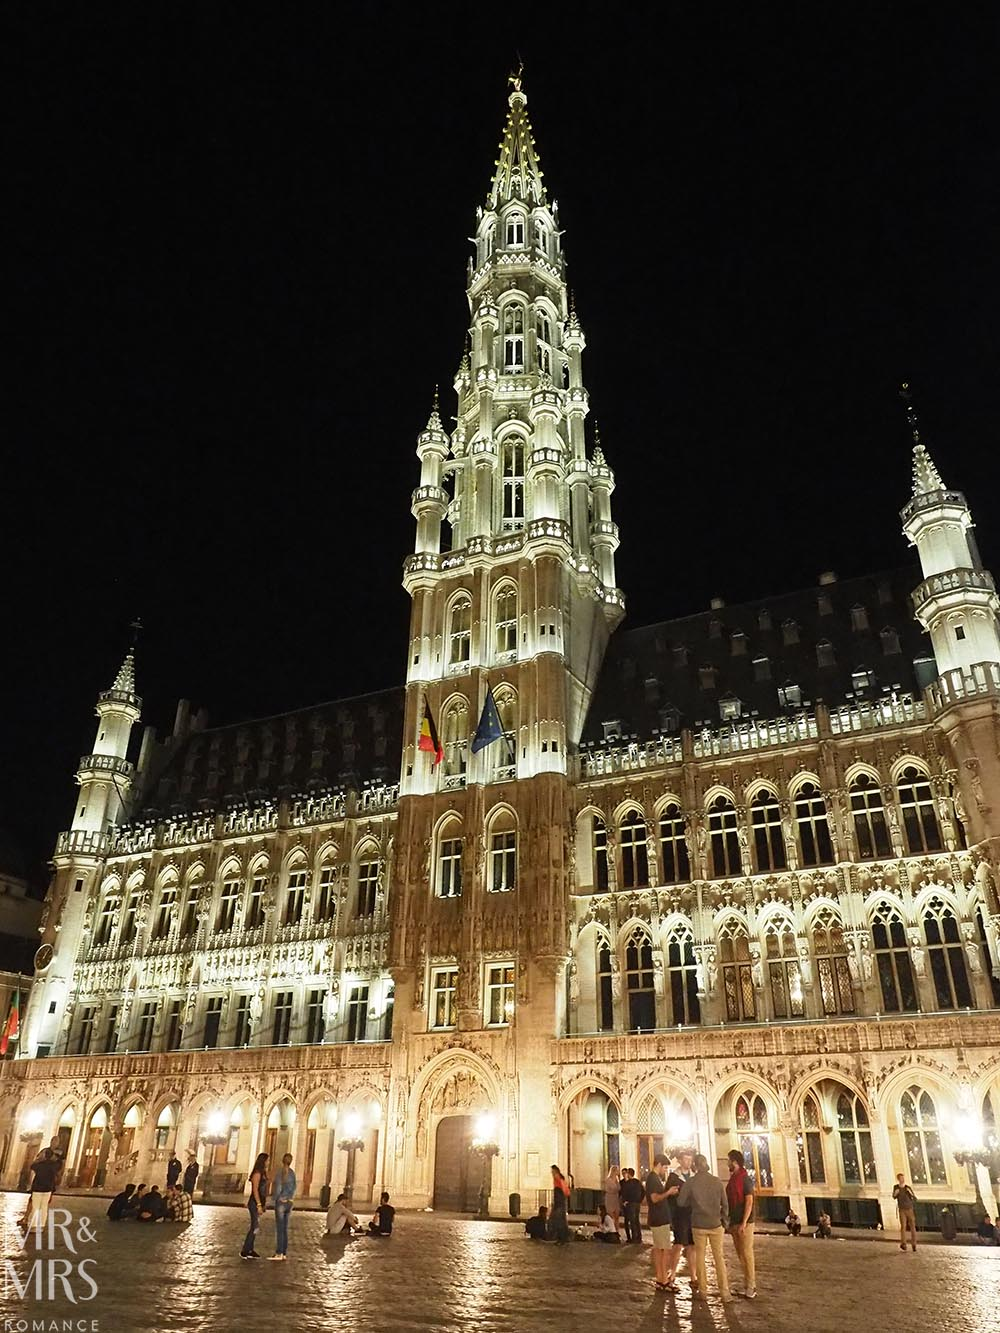 Brussels in 24 hours - Grand-Place/Grote Markt travel guide - MMR